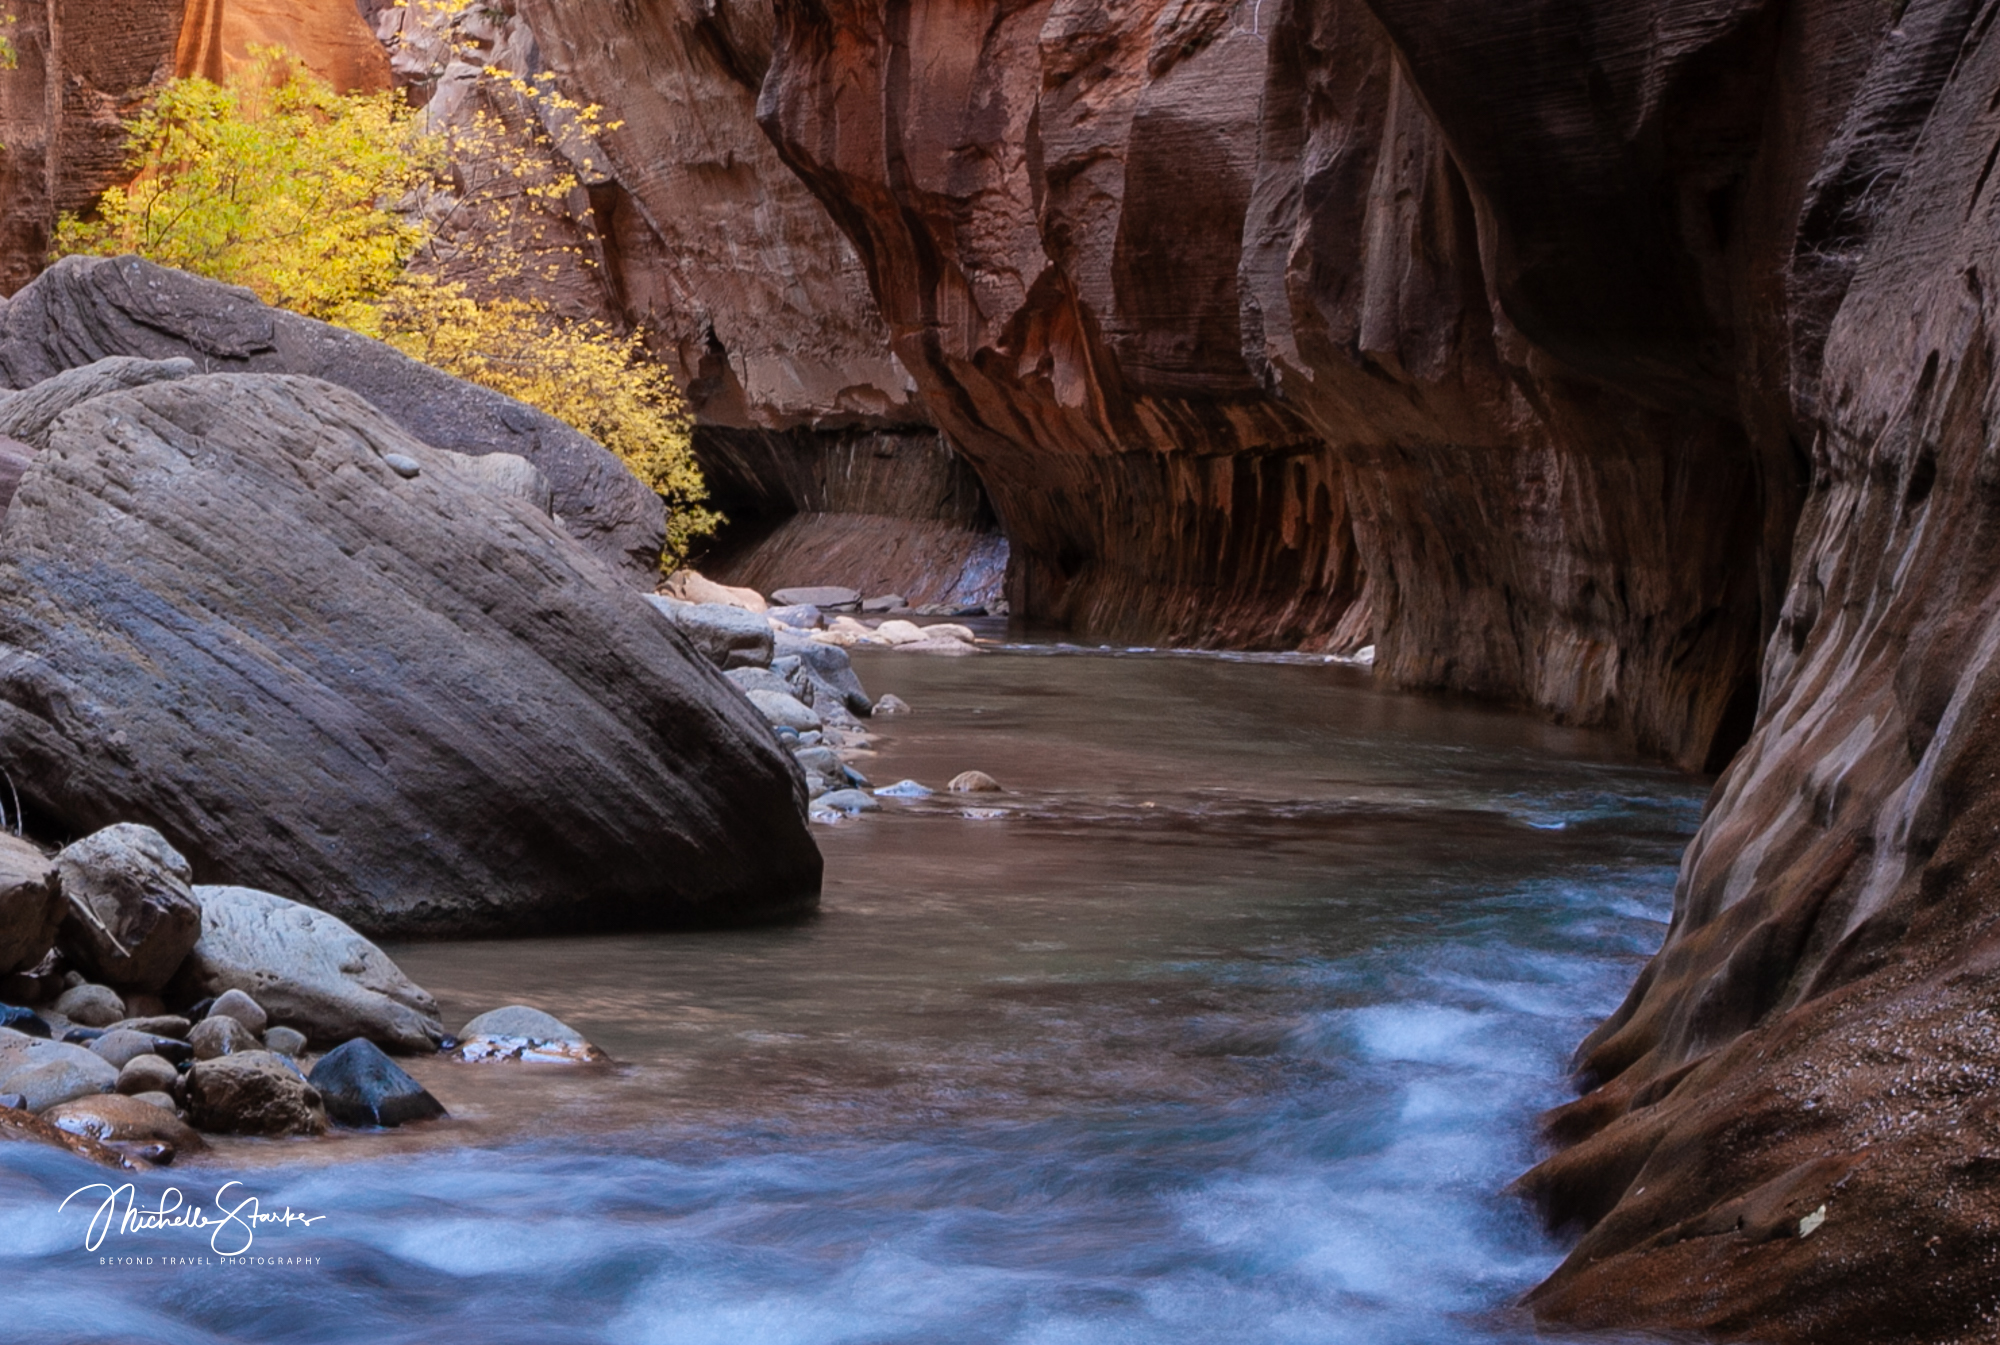 """The Narrows"" Virgin River, Zion National Park, Springdale, UT"